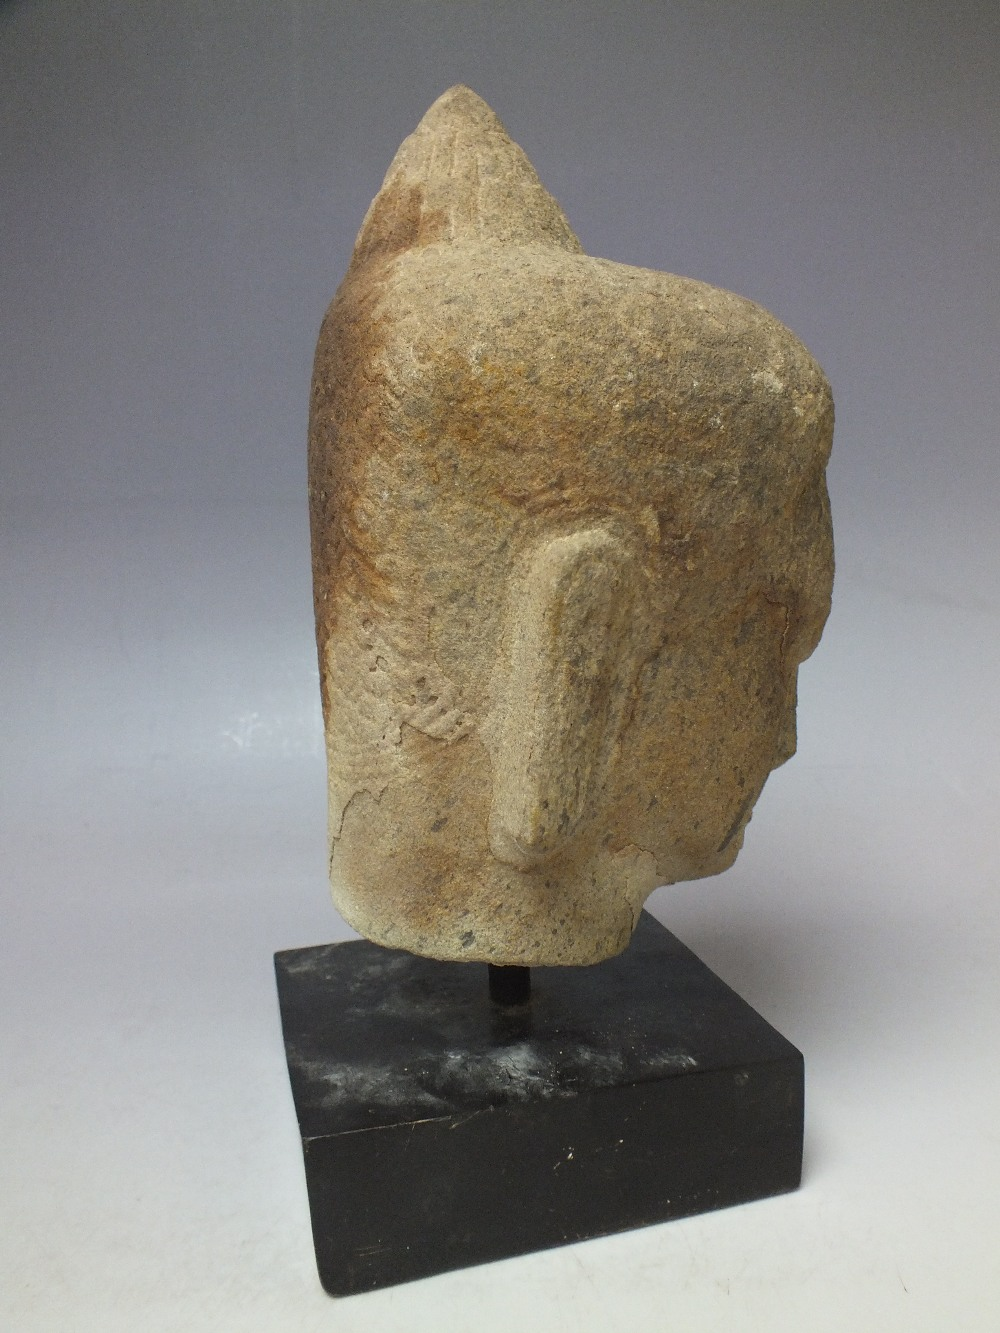 Lot 808 - A CIRCA 13TH CENTURY CAMBODIAN SANDSTONE HEAD, Khumer period, H 19 cm, overall H 25 cm inc base